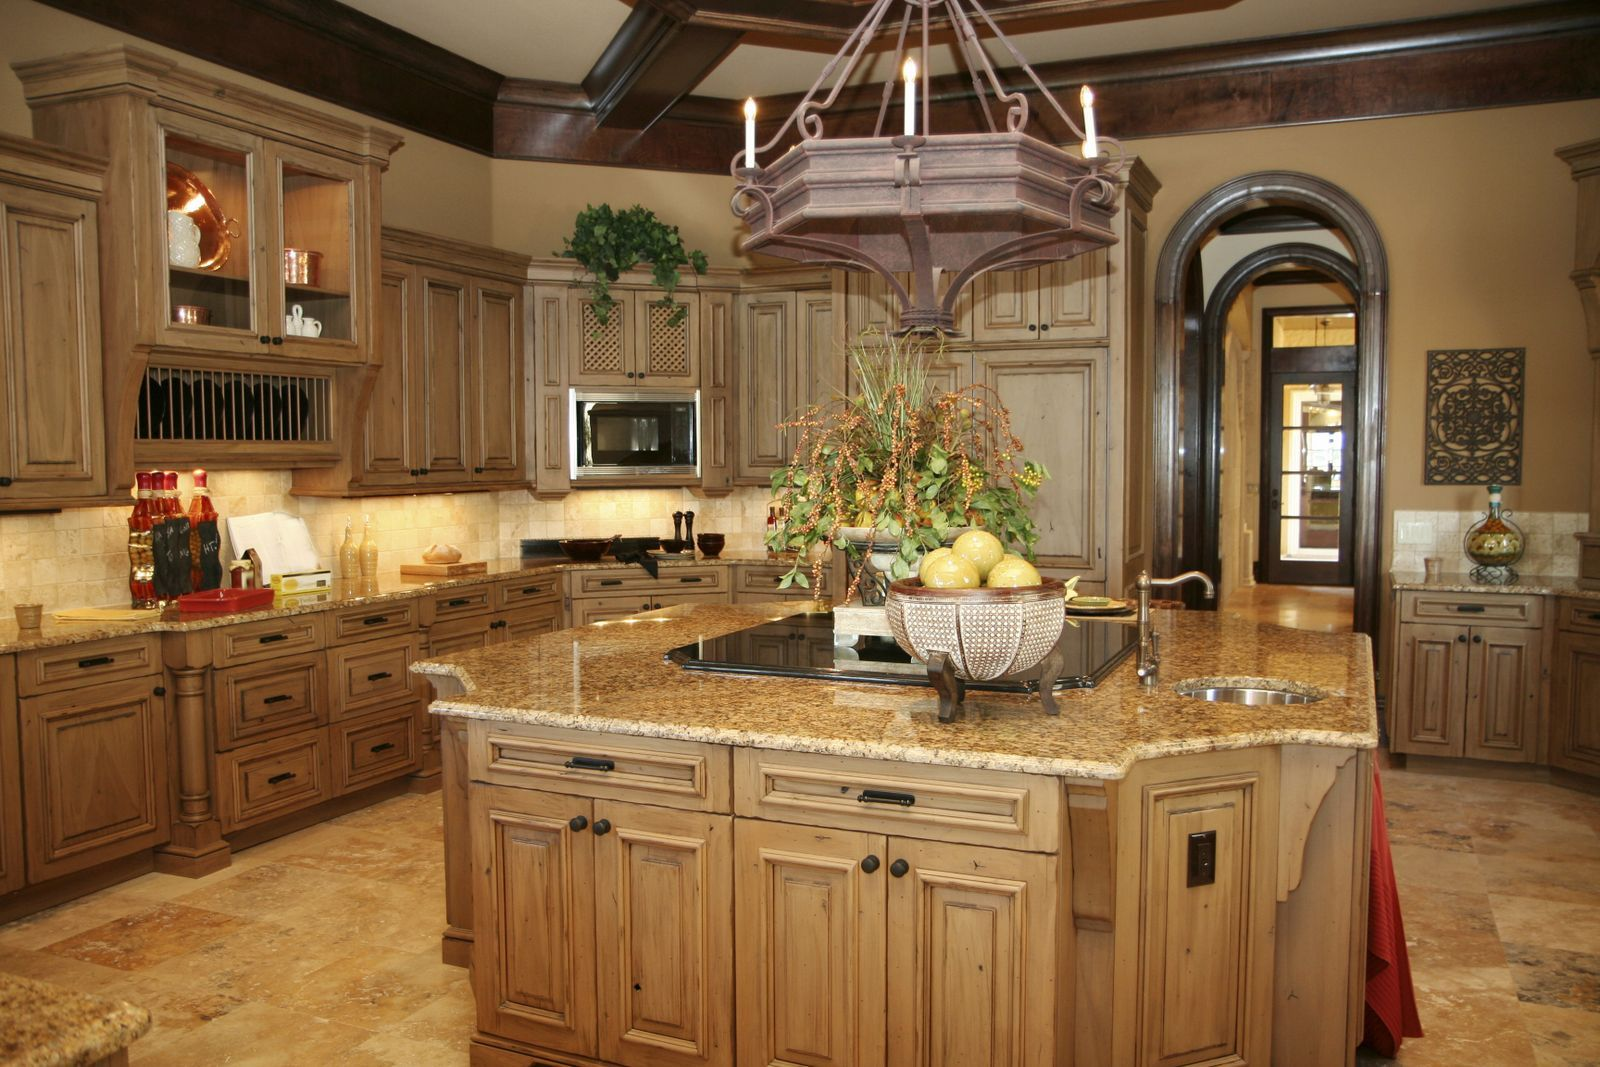 Discount Granite Countertops Nj Granite Countertops Granite Countertops Beautify New